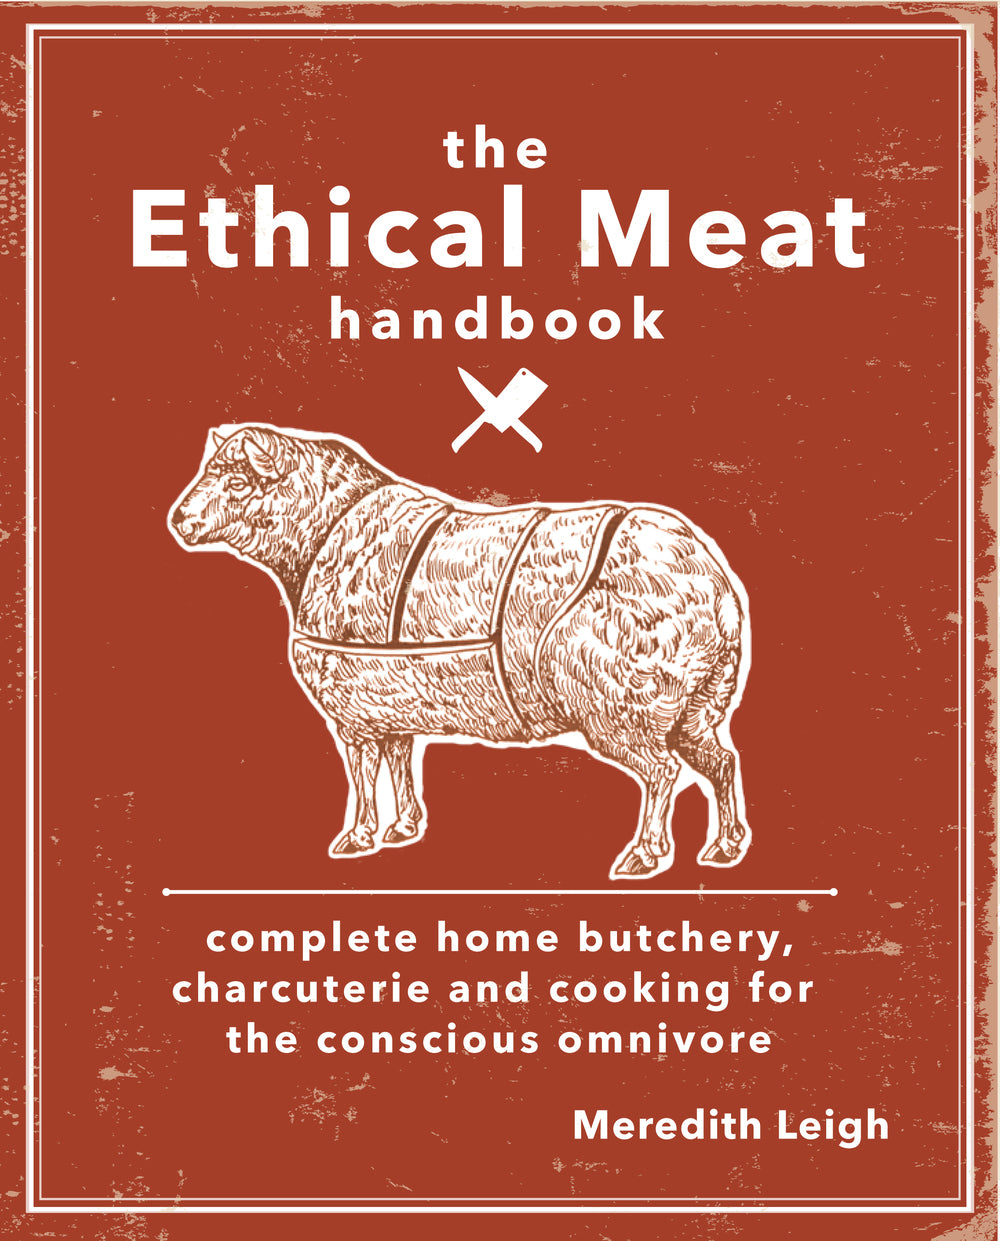 Charcuterie Intensive -  Ethical meat workshop with Meredith Leigh